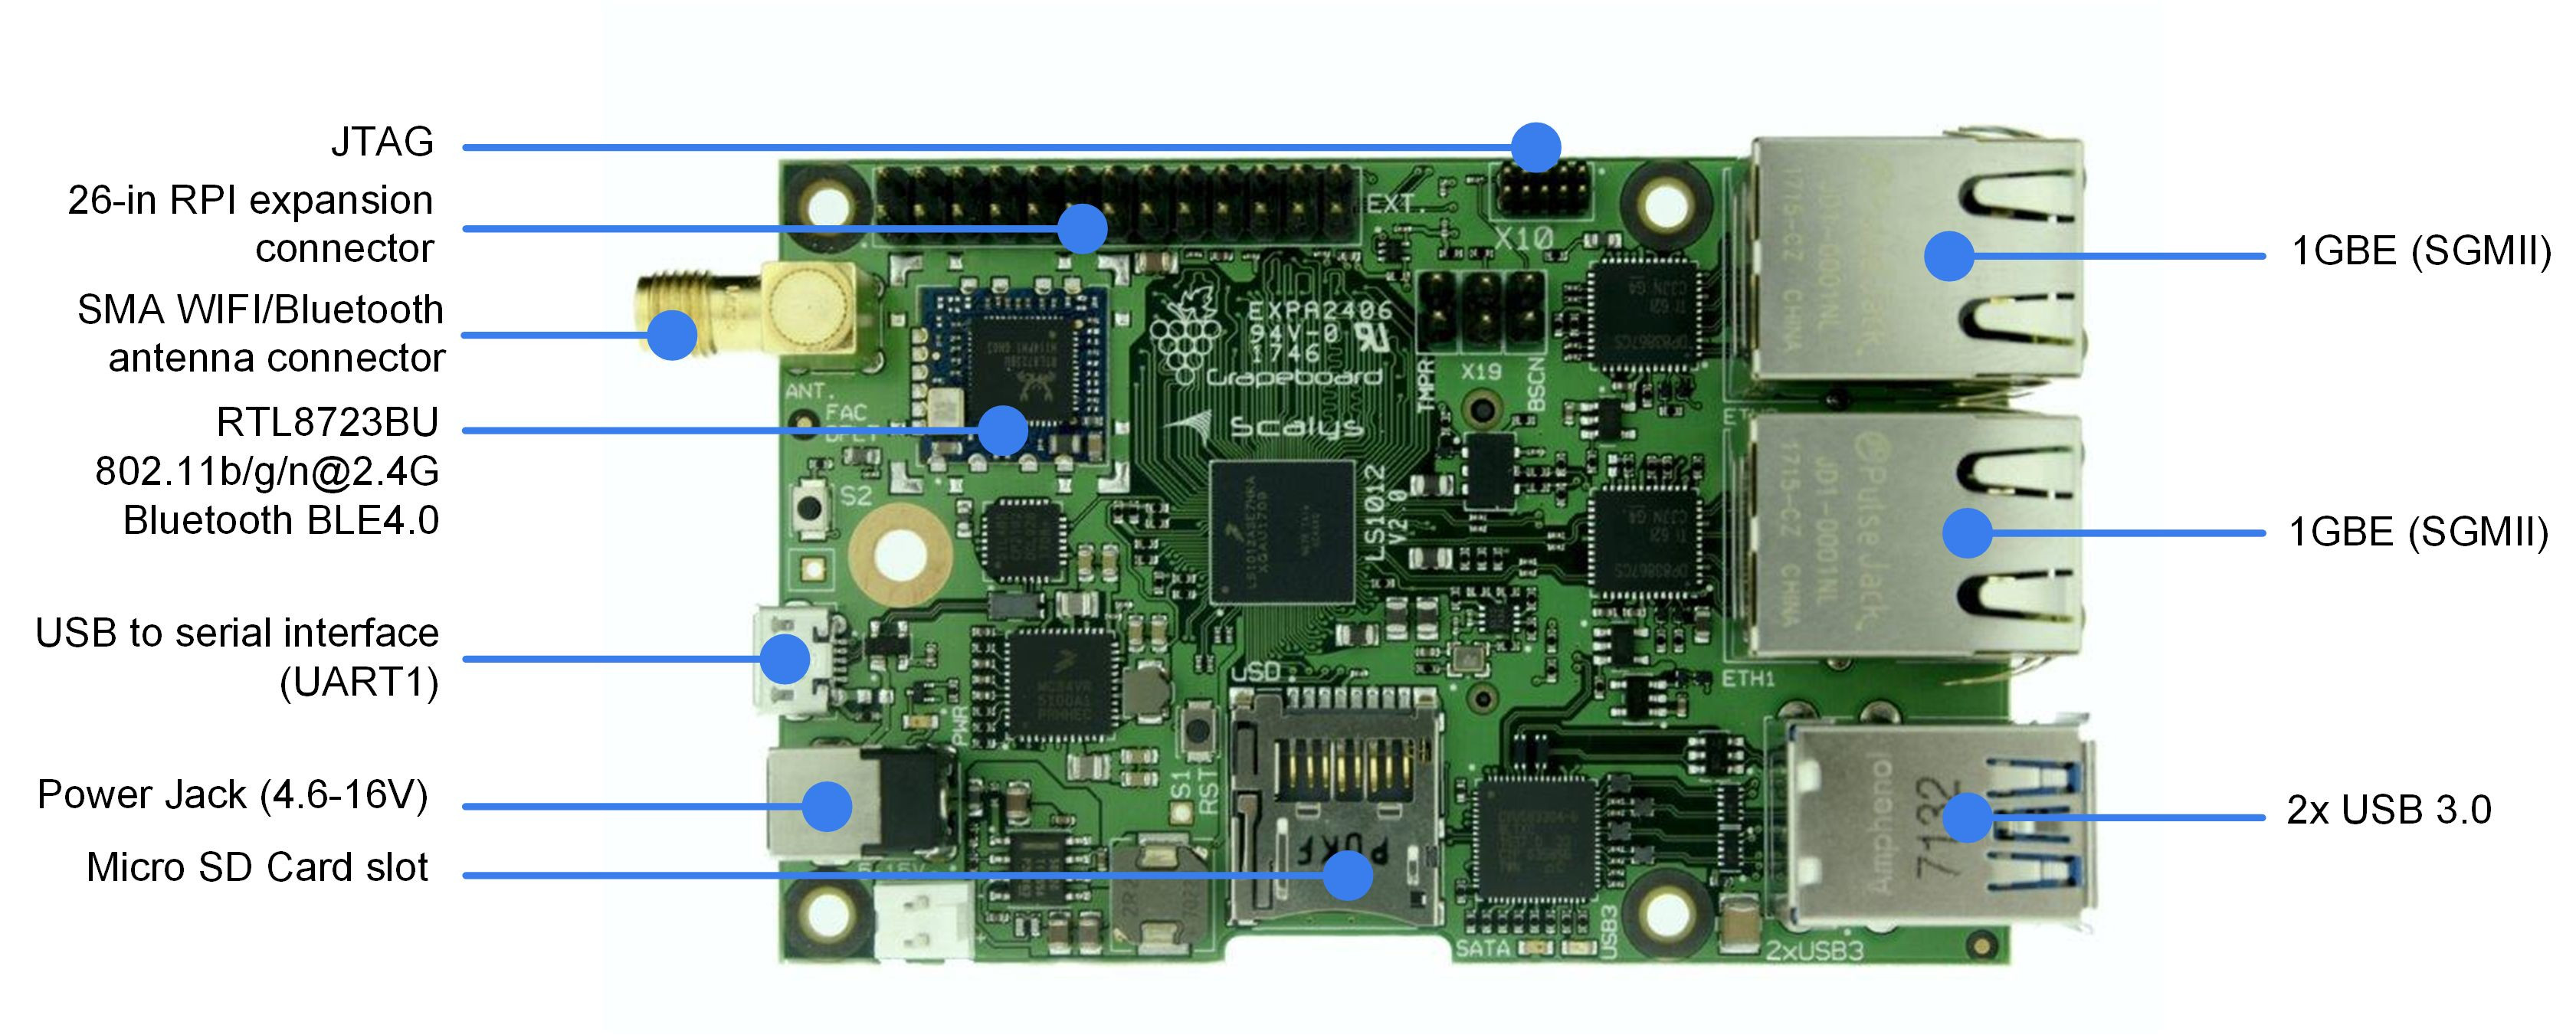 Grapeboard Raspberry Pi Lookalike Comes with Dual Gigabit Ethernet